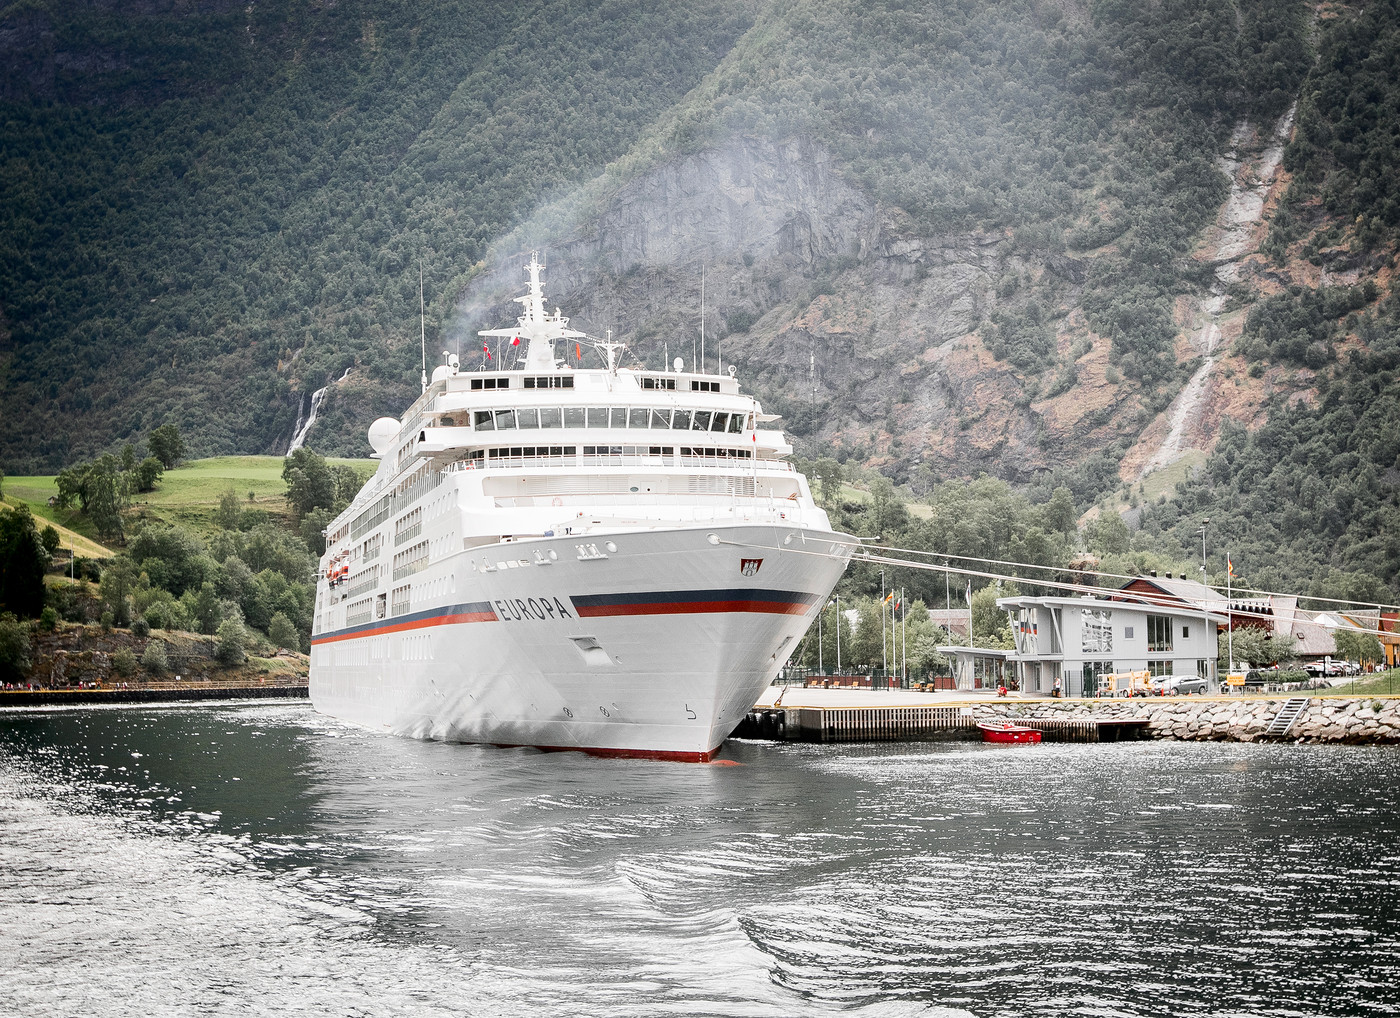 Cruise ship Europa at Flam